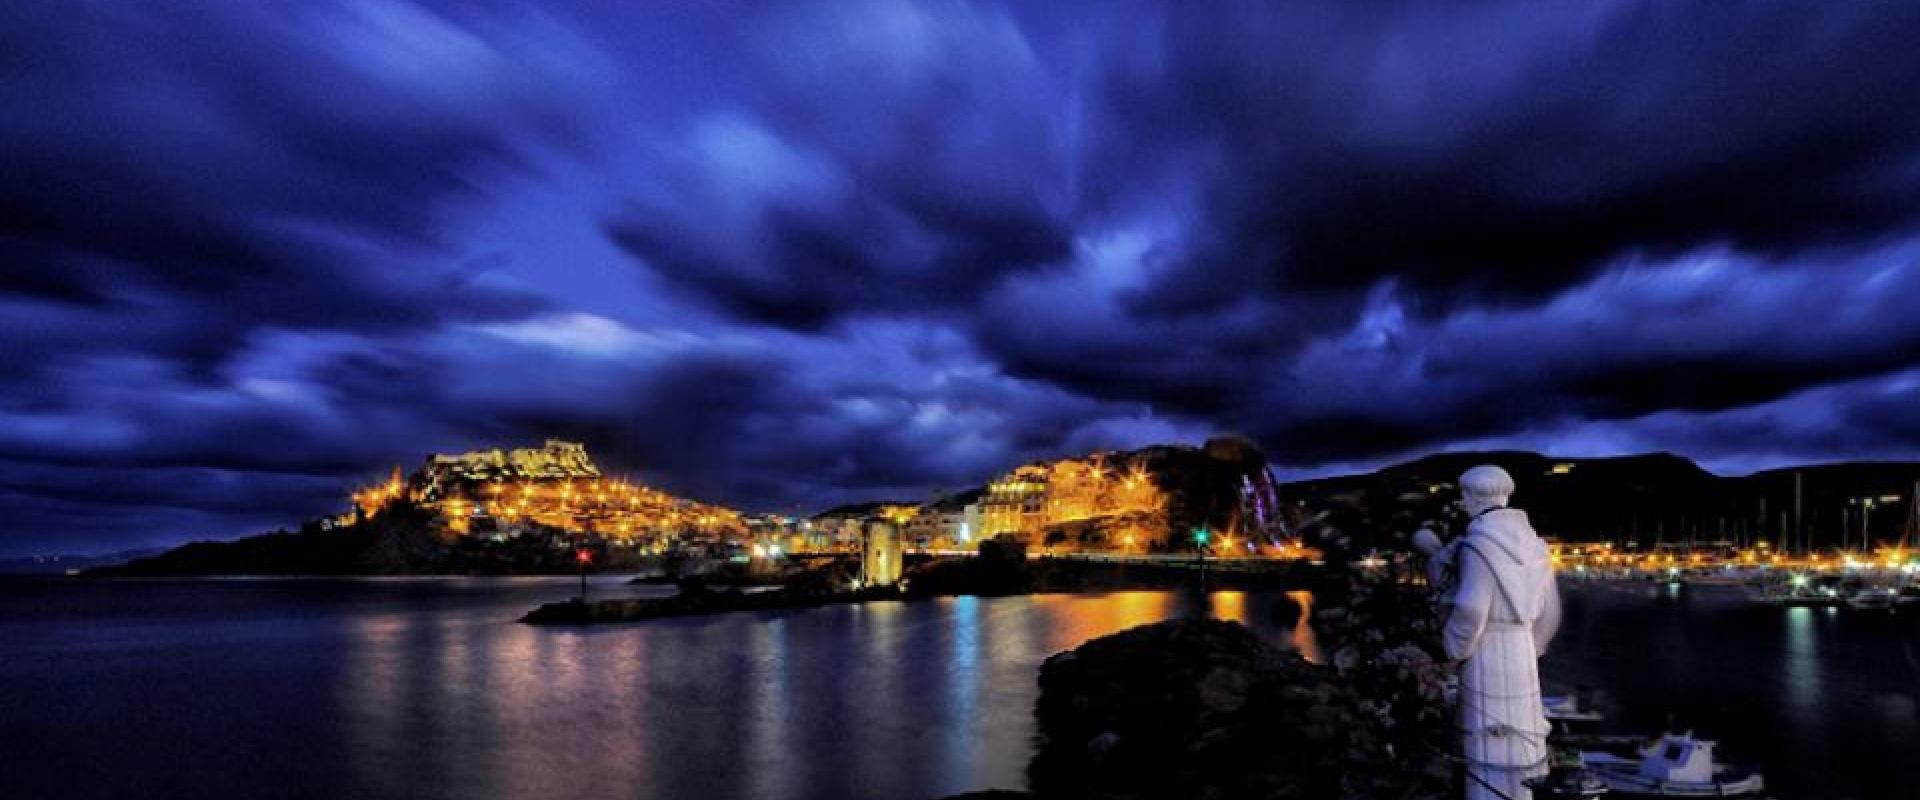 Nocturnal tour of Castelsardo